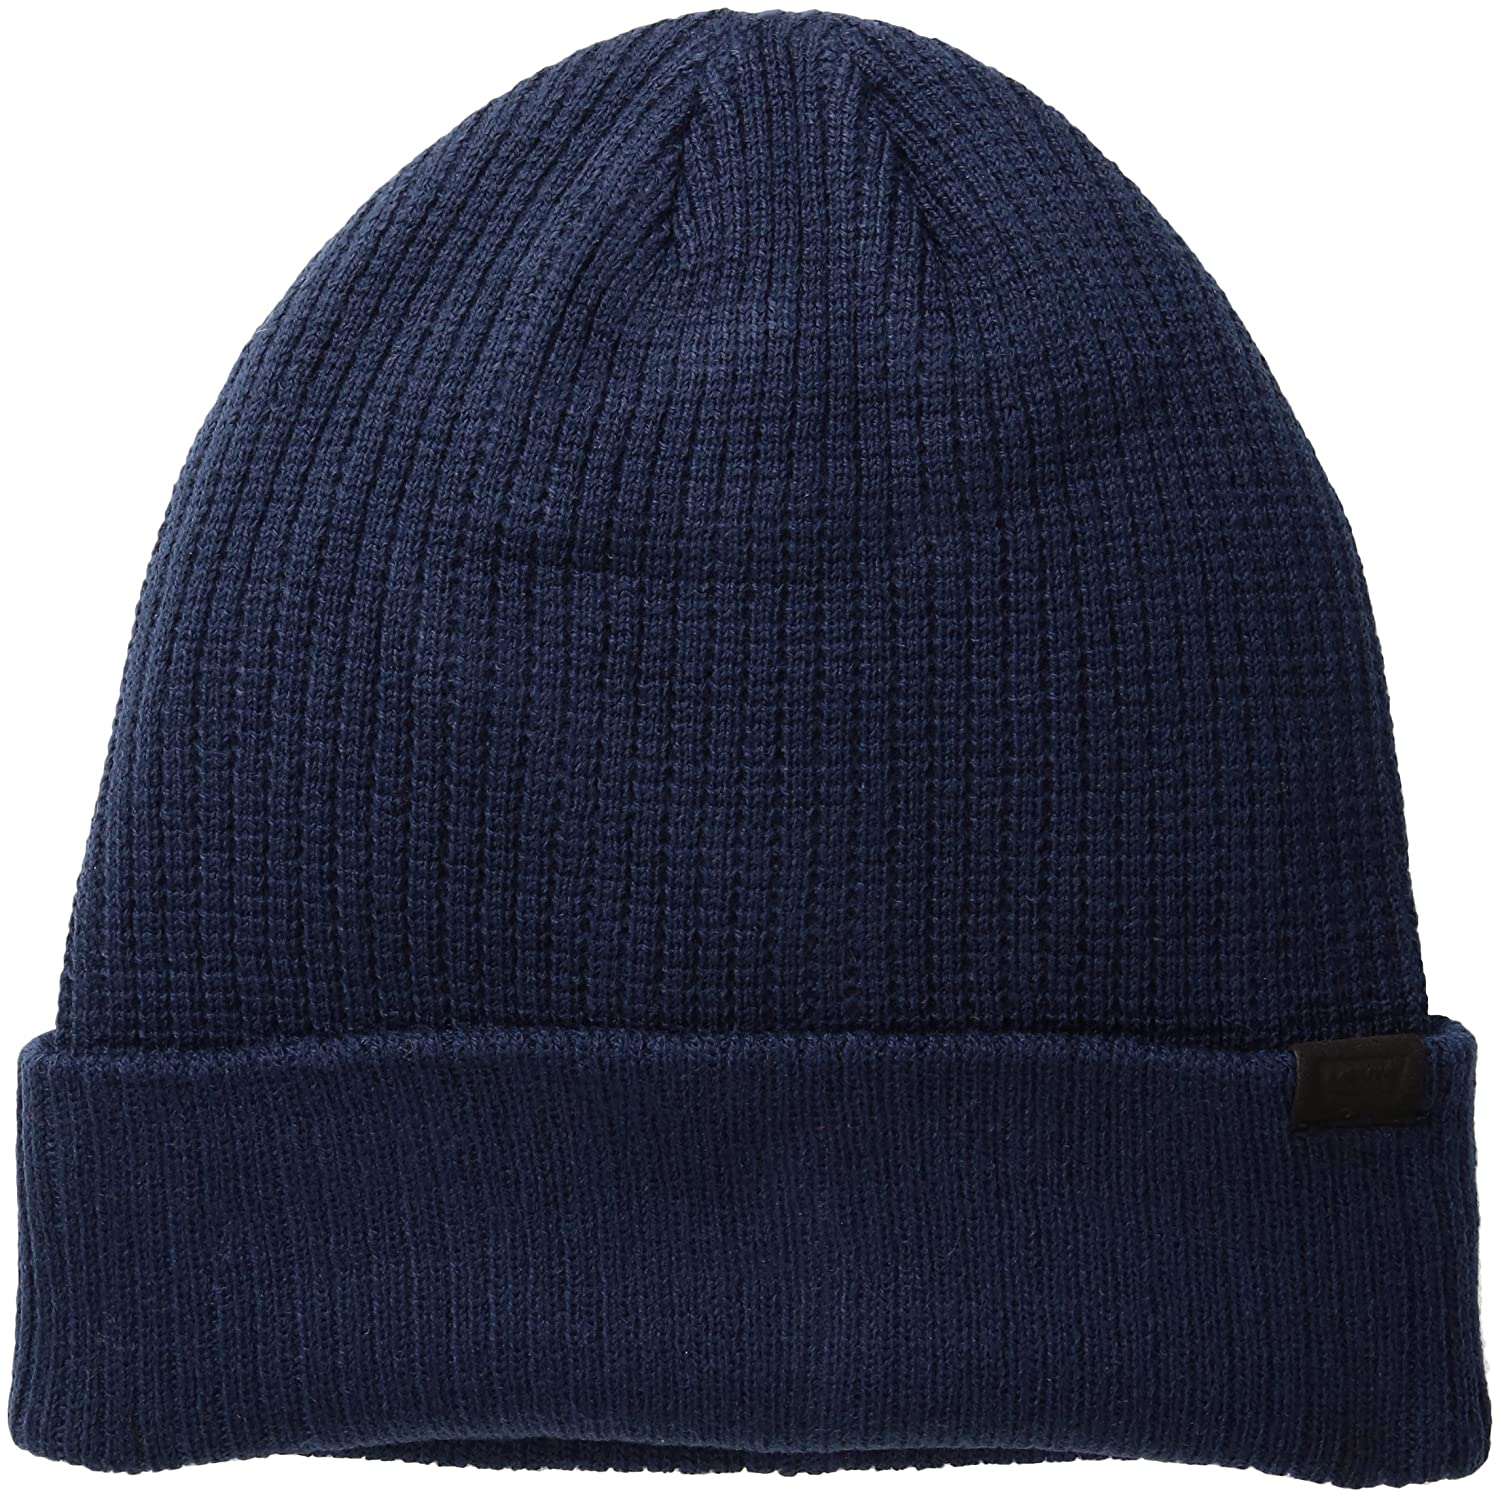 bb44e804 Levi's Men's Max Warmth Beanie with Solid Cuff Tipping Stripe, Khaki  Heather, One Size at Amazon Men's Clothing store: